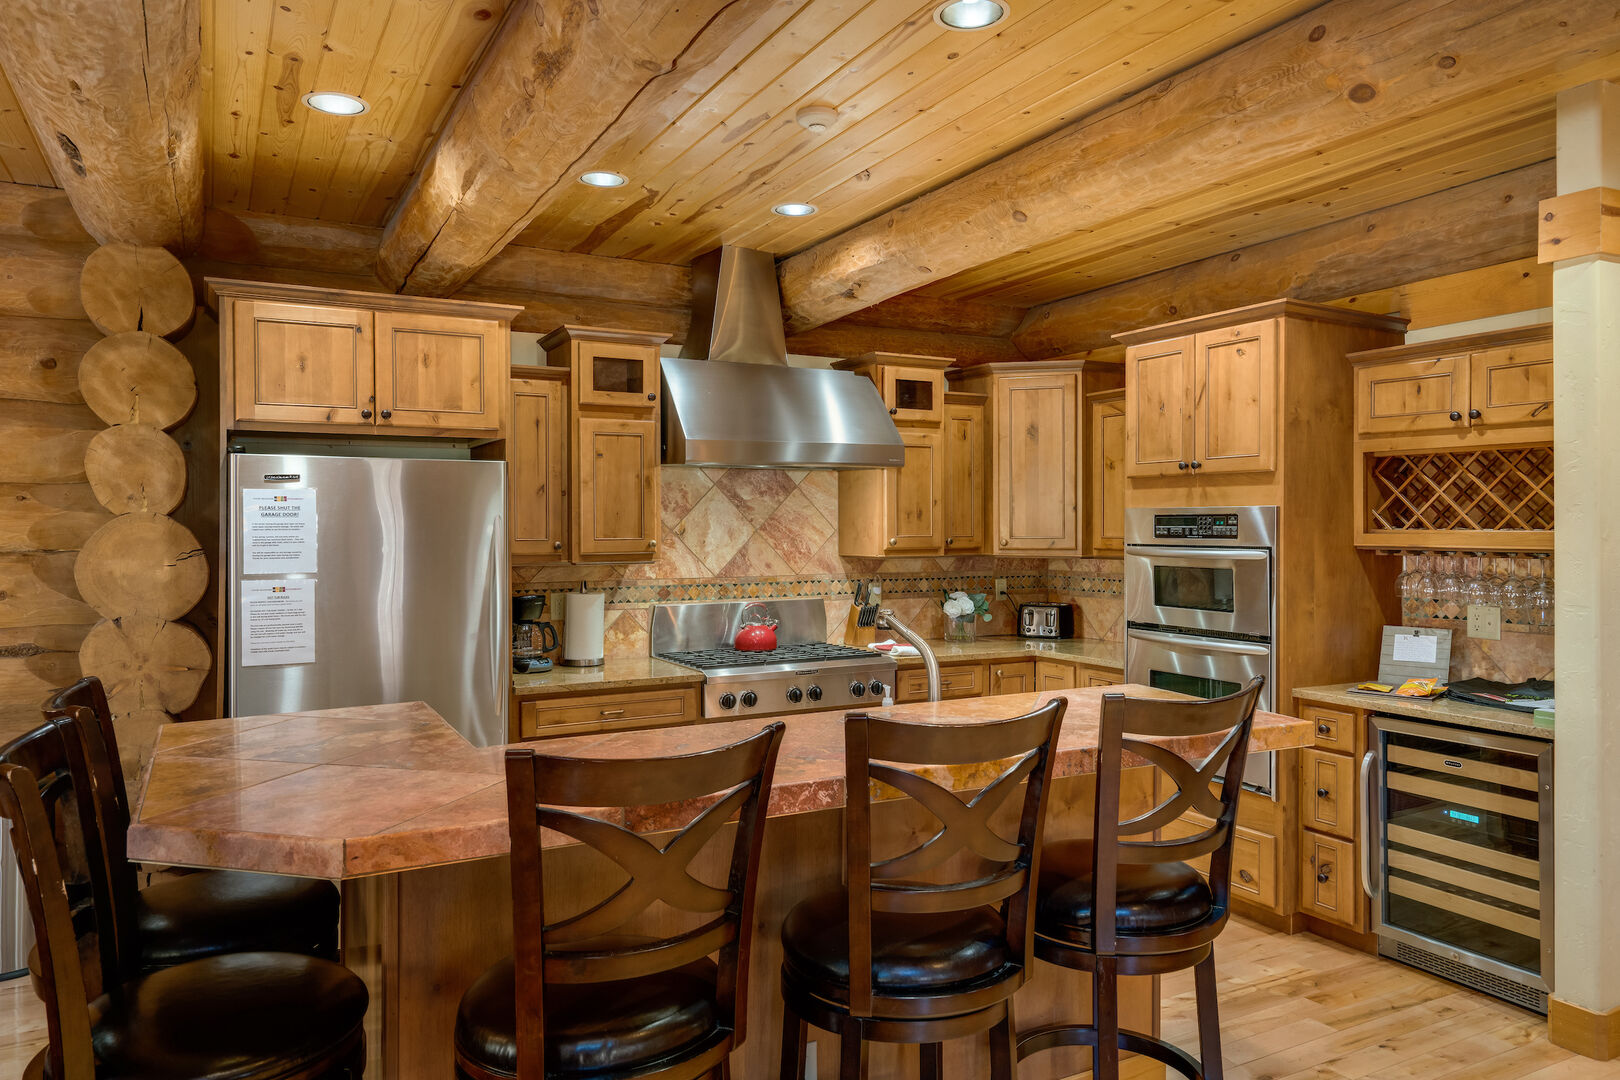 Stainless appliances, wine refrigerator, seating for 5 at the island!